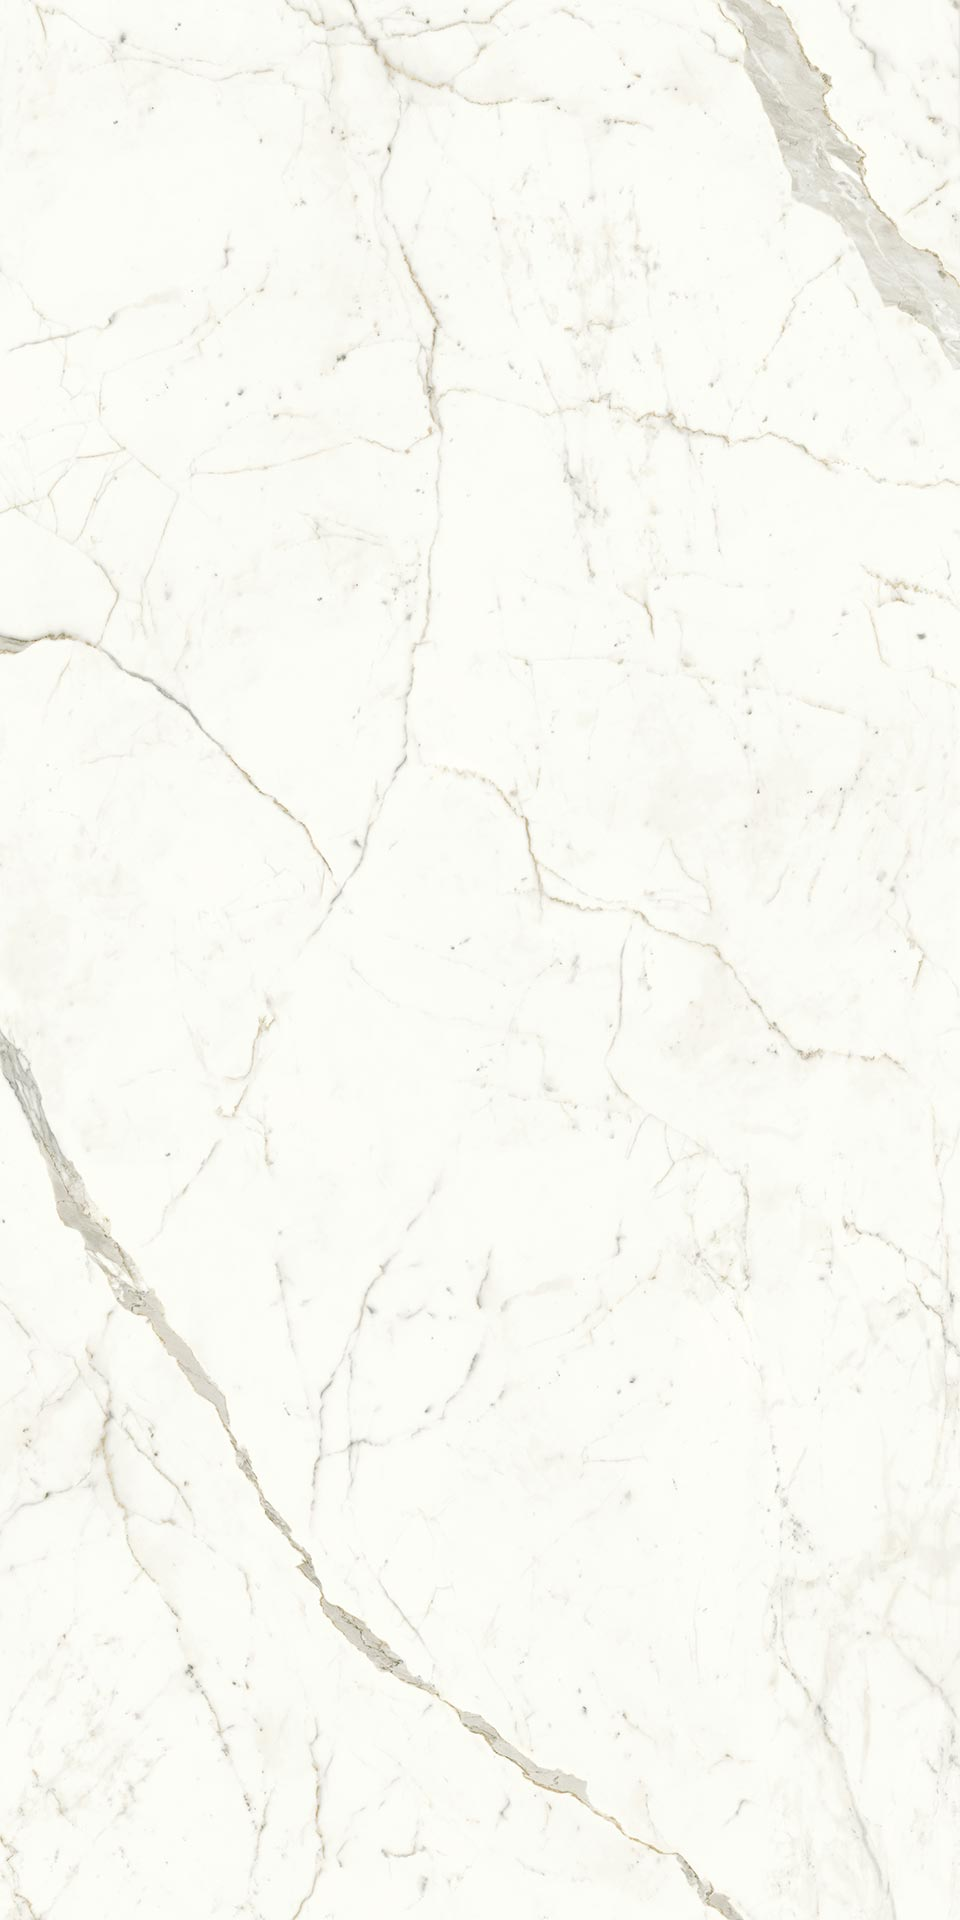 120x240-9-calacatta-prestigio-9mm-polished-porcelain-tile